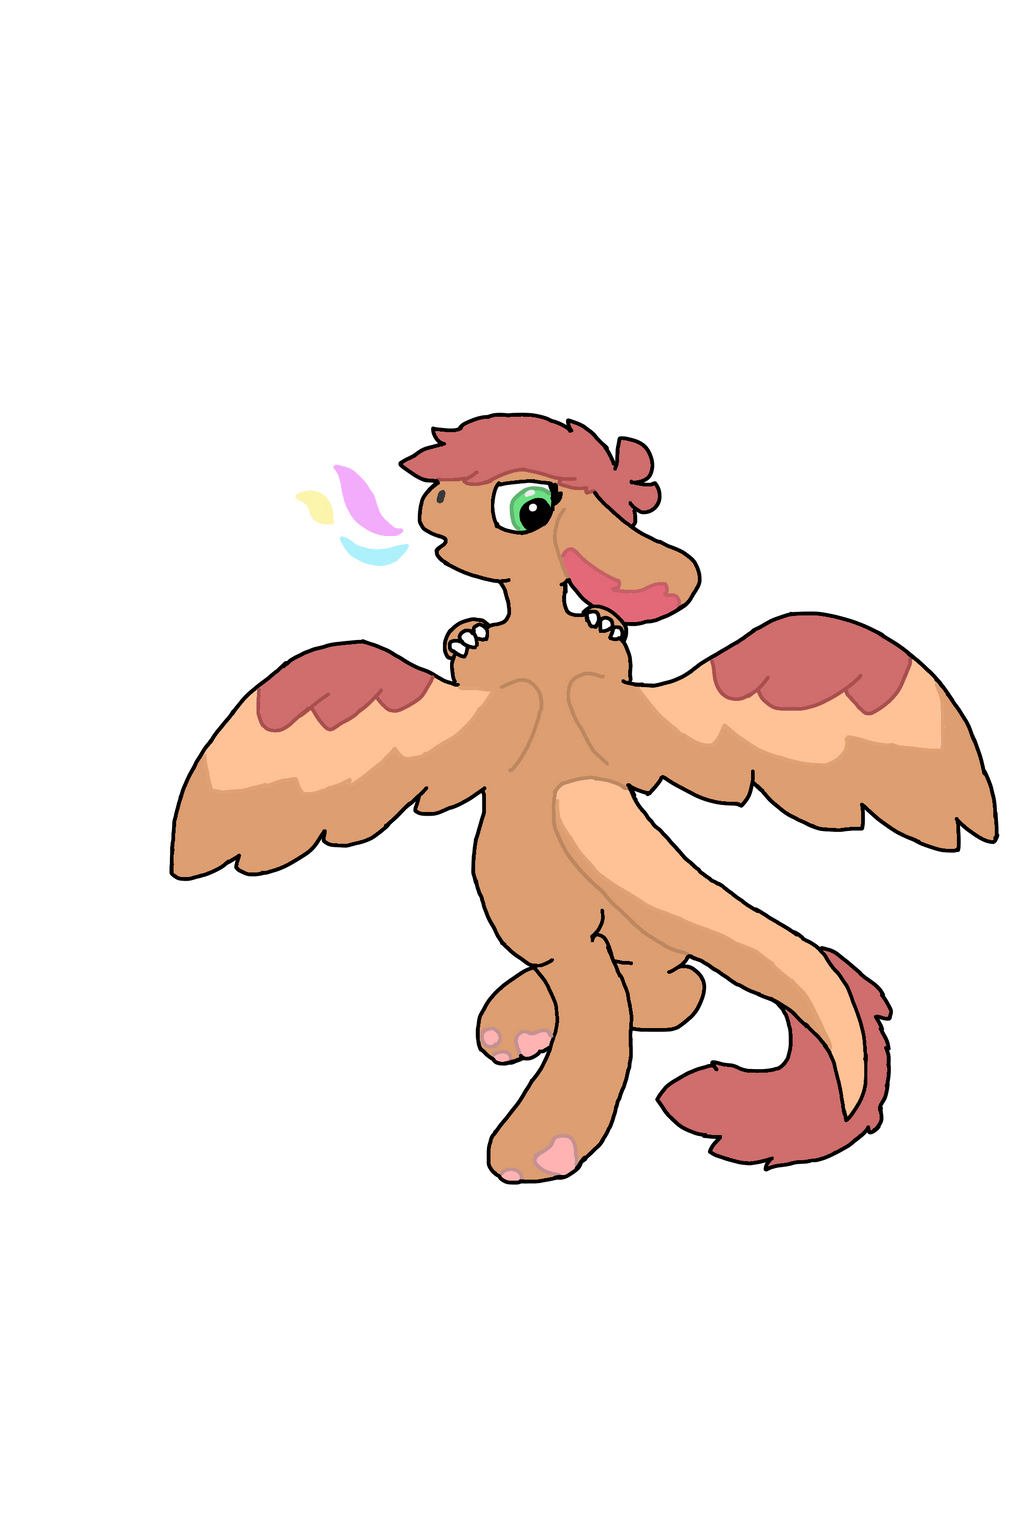 Flames of beauty by Shadethewolf345